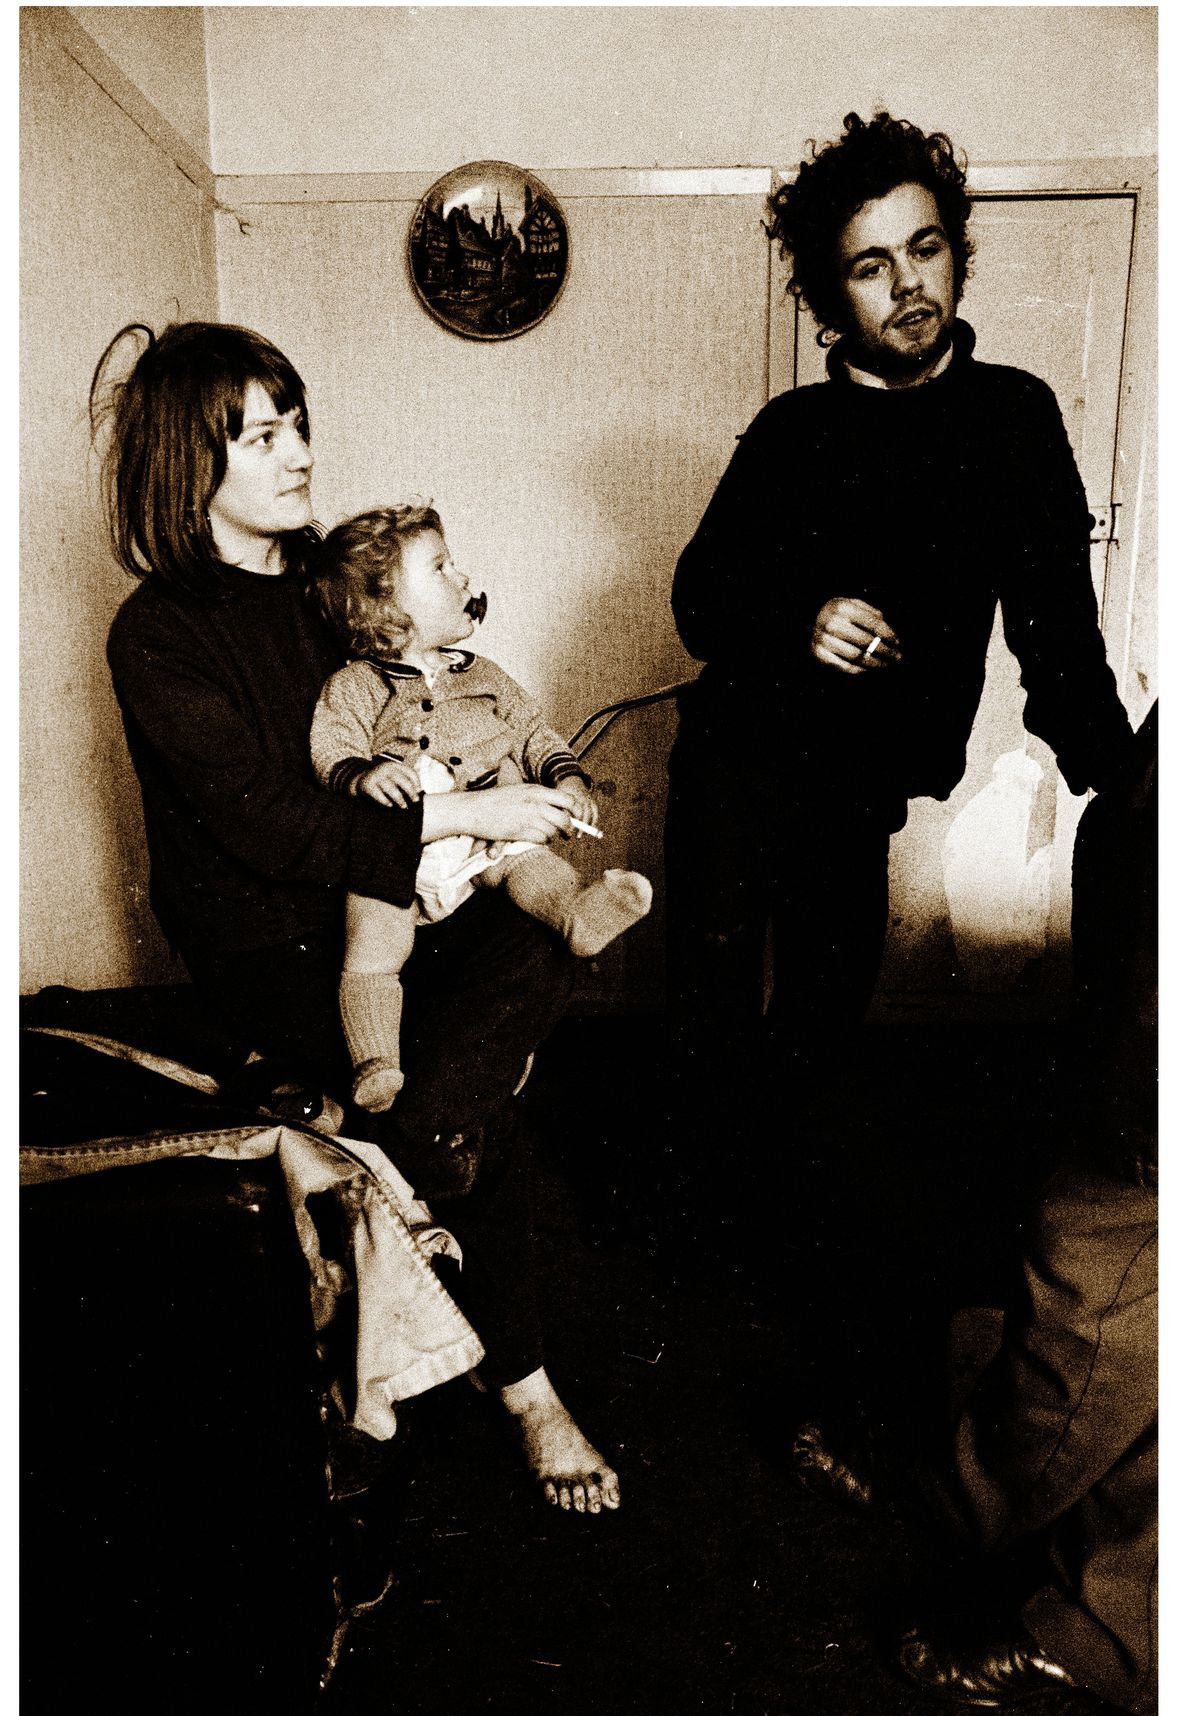 A young couple and their child who had just moved into their new home